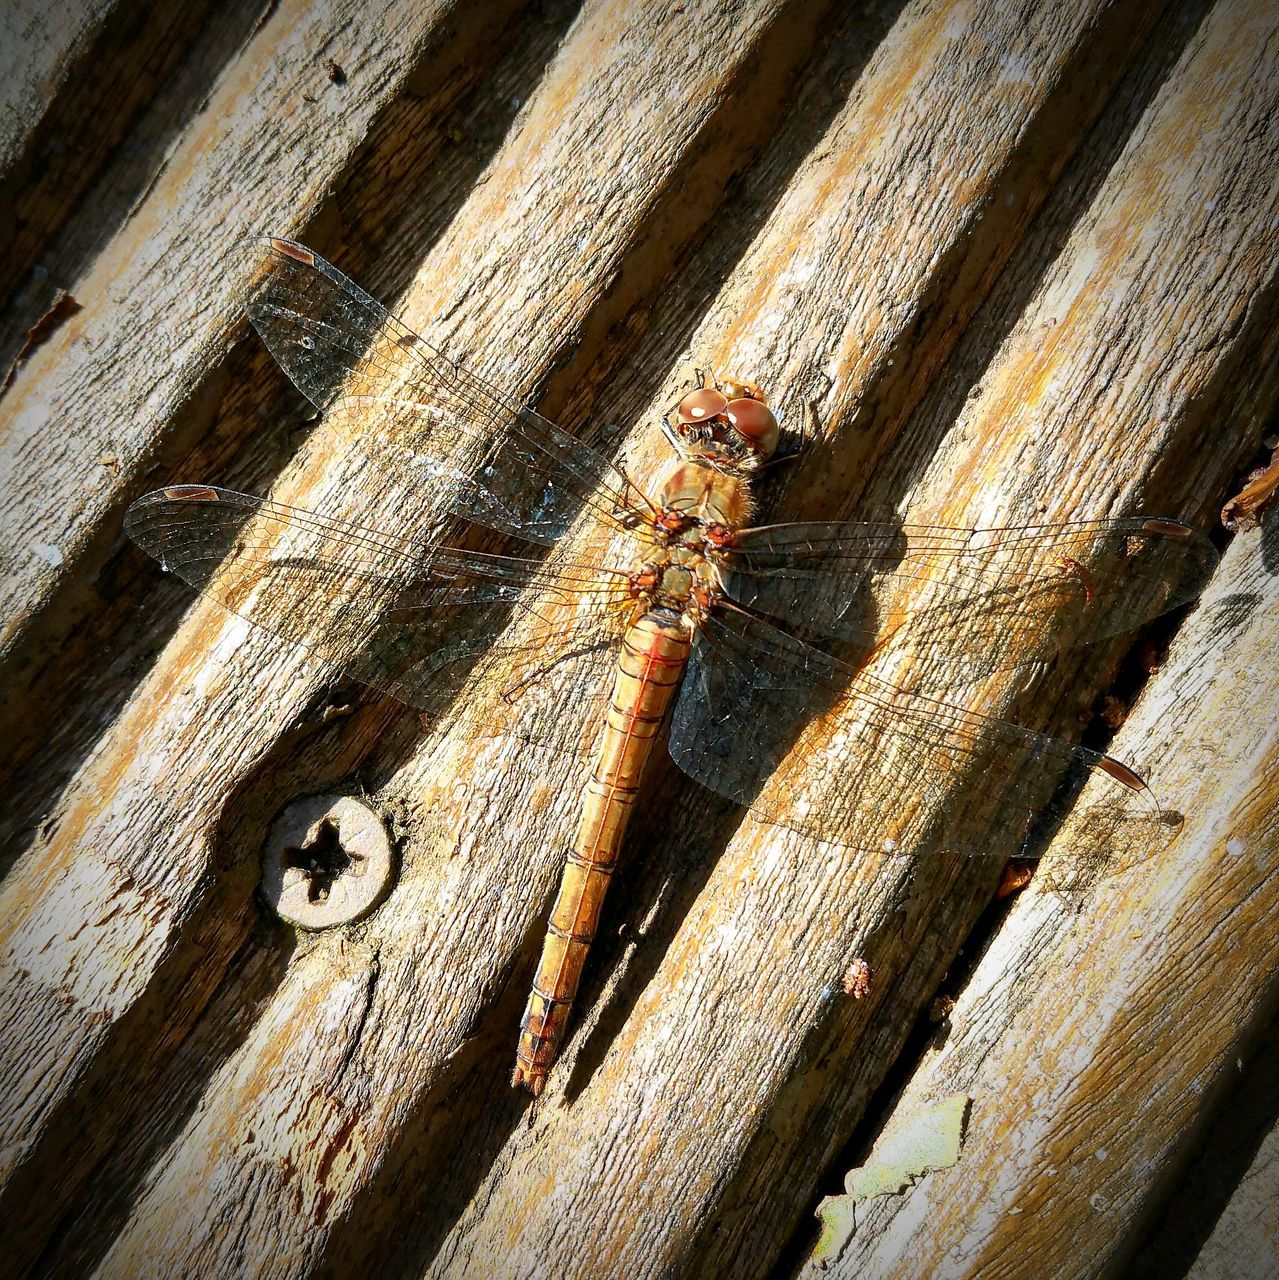 High Angle View Of Insect On Wooden Table